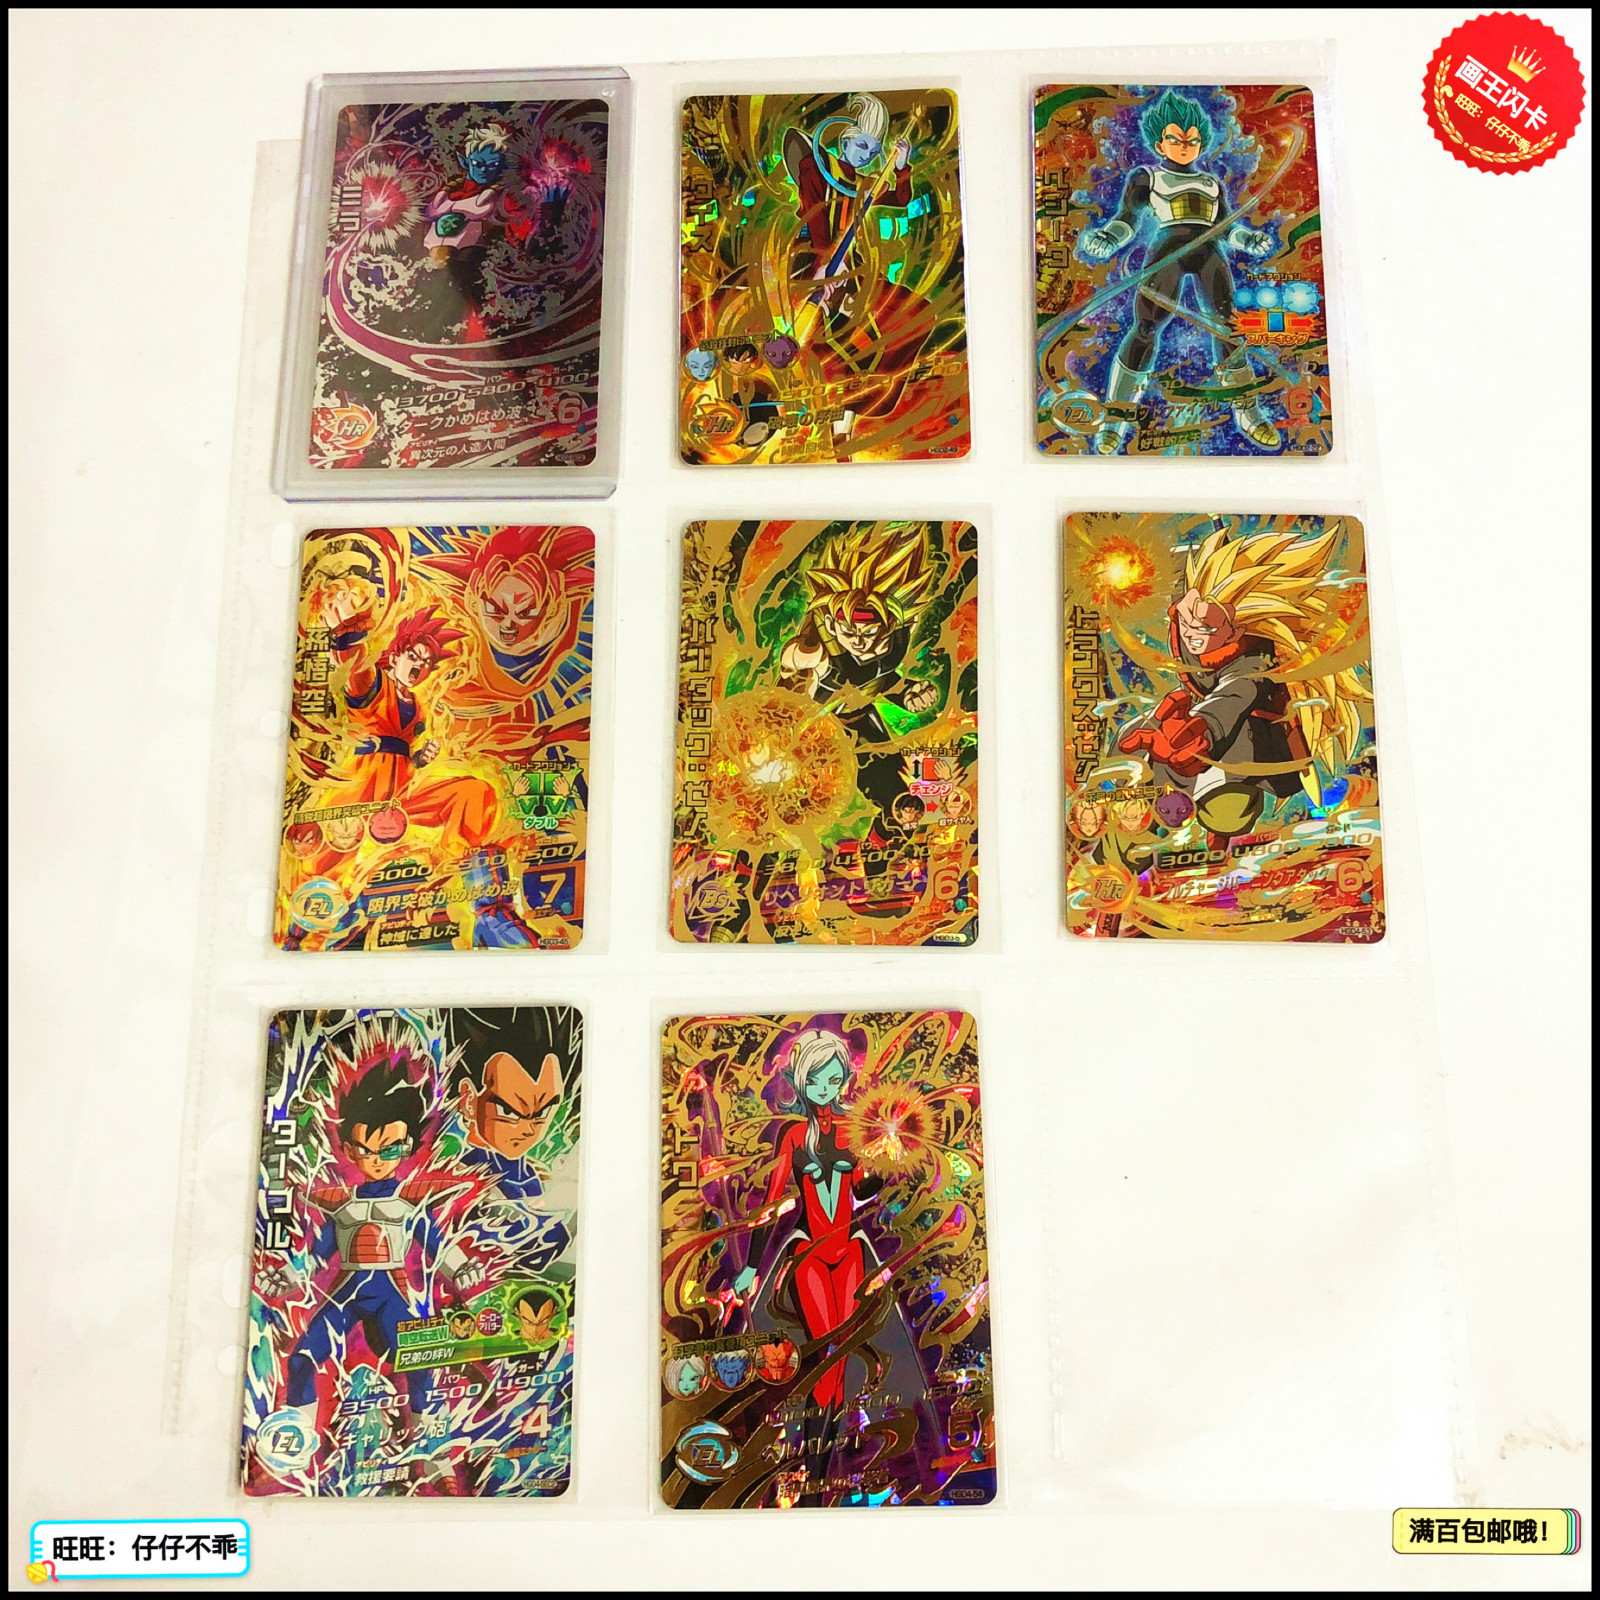 Japan Original Dragon Ball Hero Card SEC 4 Stars Goku Toys Hobbies Collectibles Game Collection Anime Cards